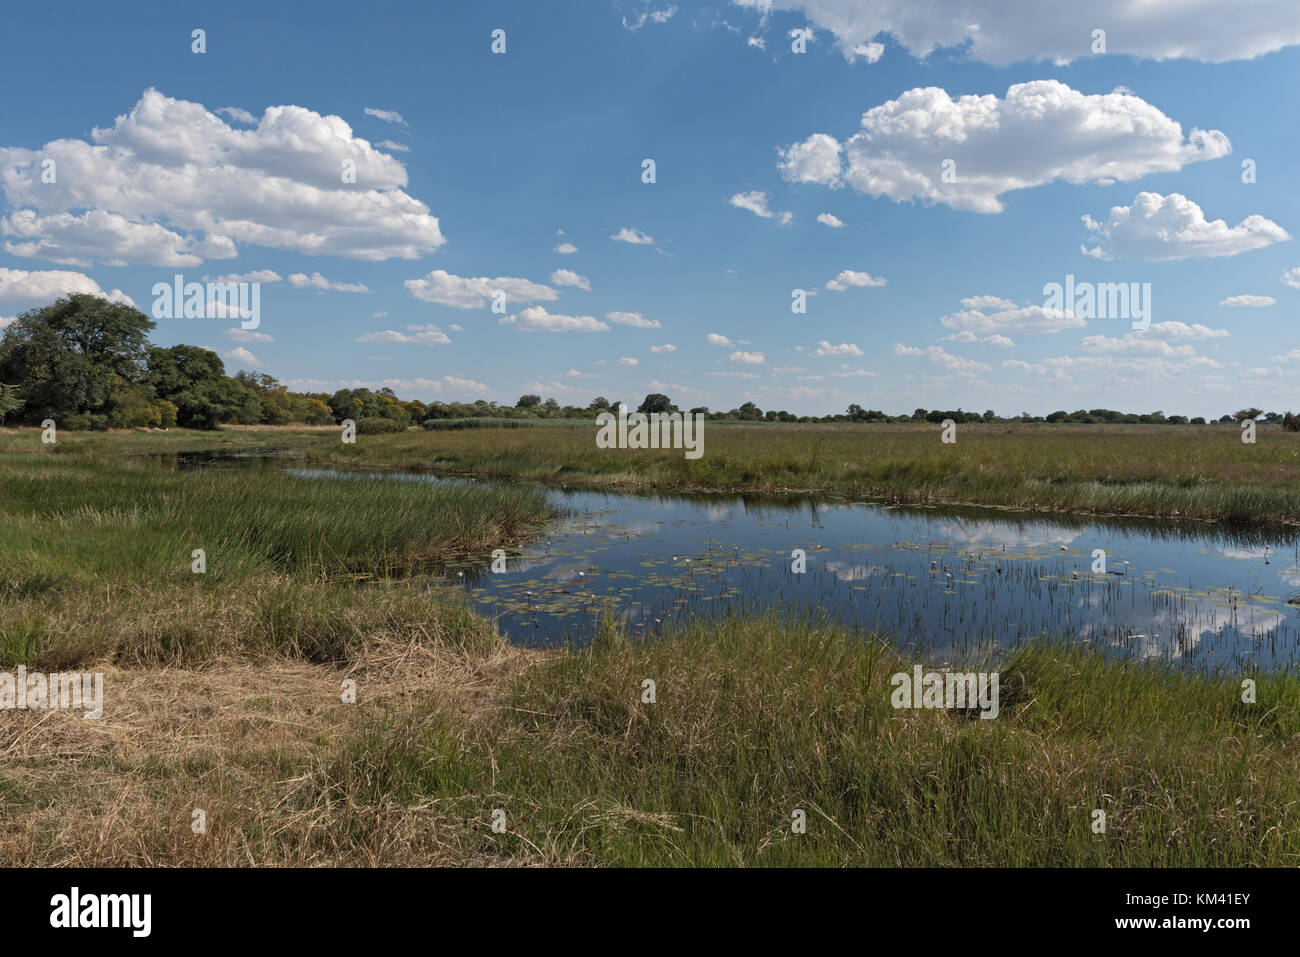 Linyanti river and marshes in Namibia, Africa - Stock Image